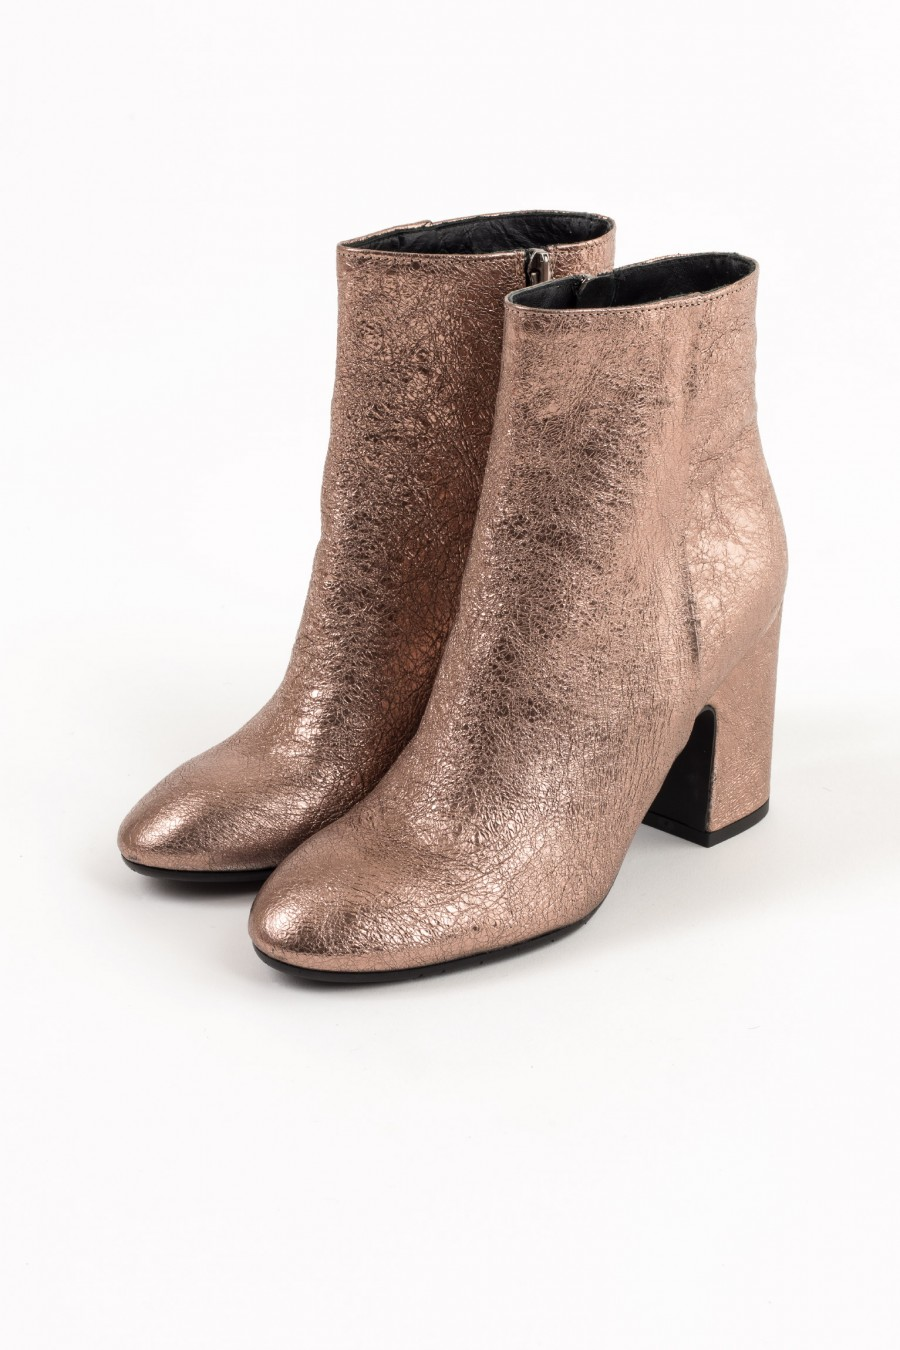 Pink metallic leather ankle boots